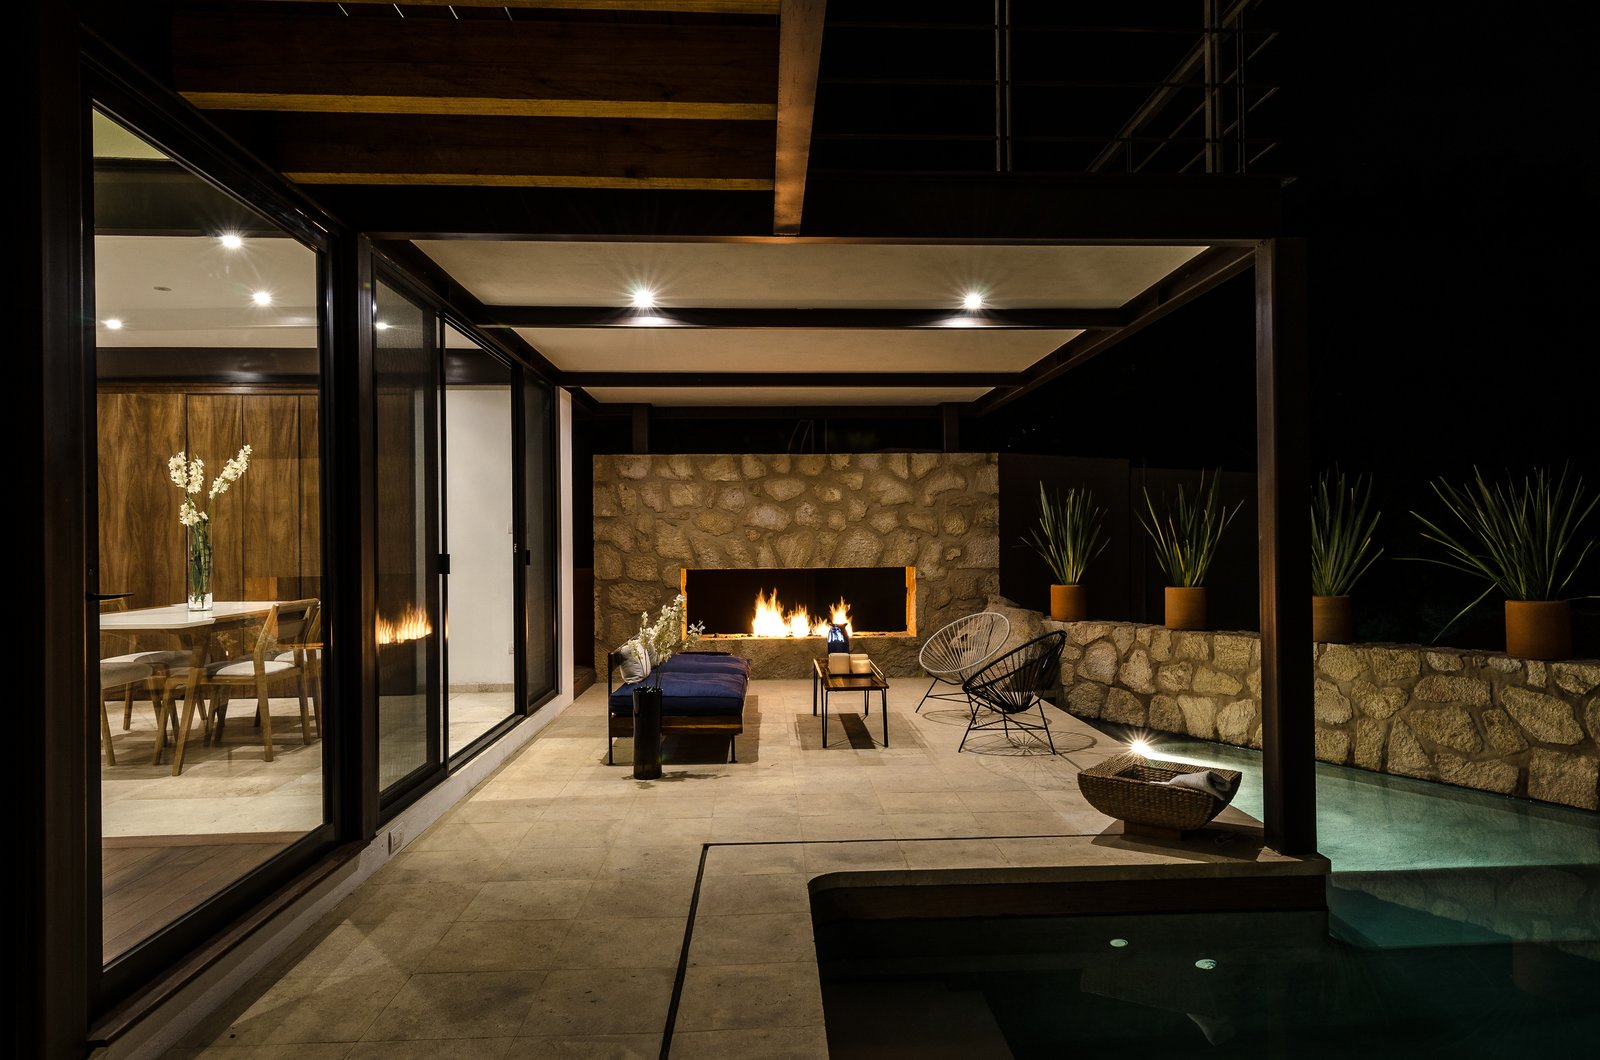 Outdoor, Back Yard, Small Pools, Tubs, Shower, and Concrete Pools, Tubs, Shower Terrace  CQ12 by tescala